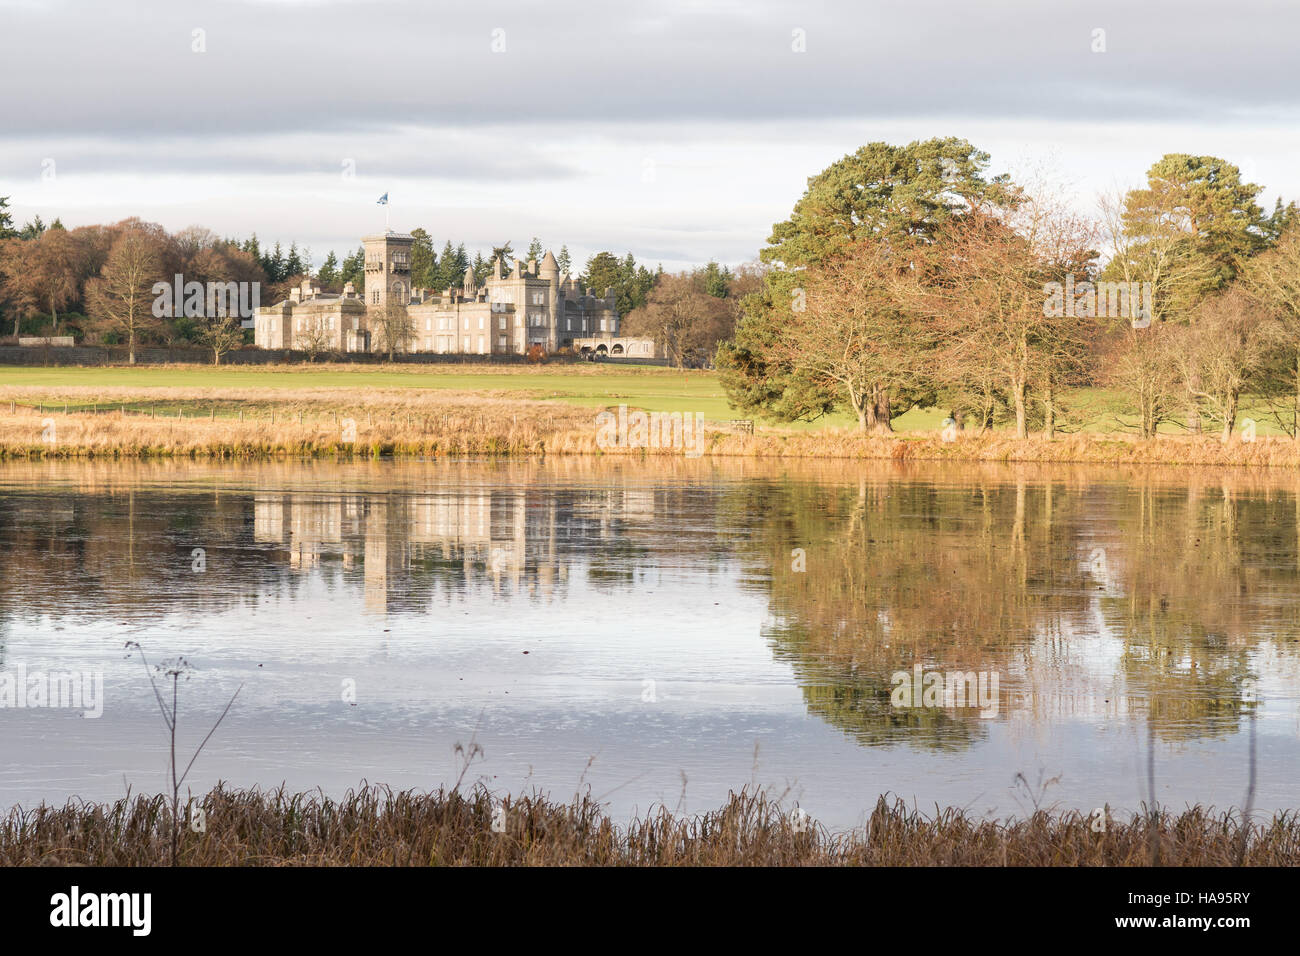 Dunecht House, Dunecht Estate, Aberdeenshire, Scotland, UK - reflections in the Policy Loch - Stock Image